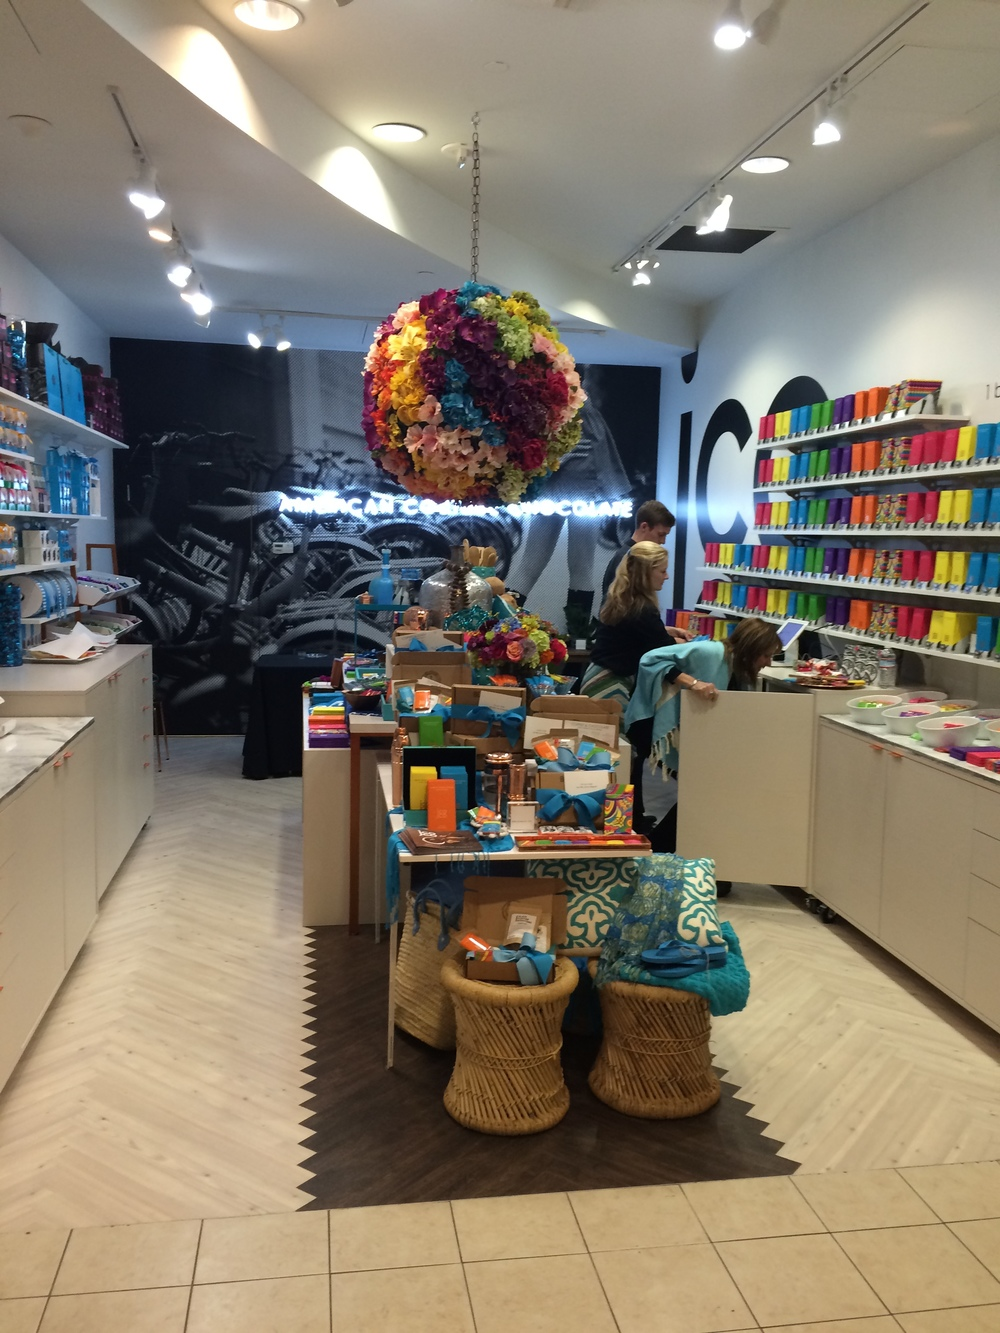 Could it be more beautiful? Welcome to the new JCOCO pop up shop in Bellevue Square.